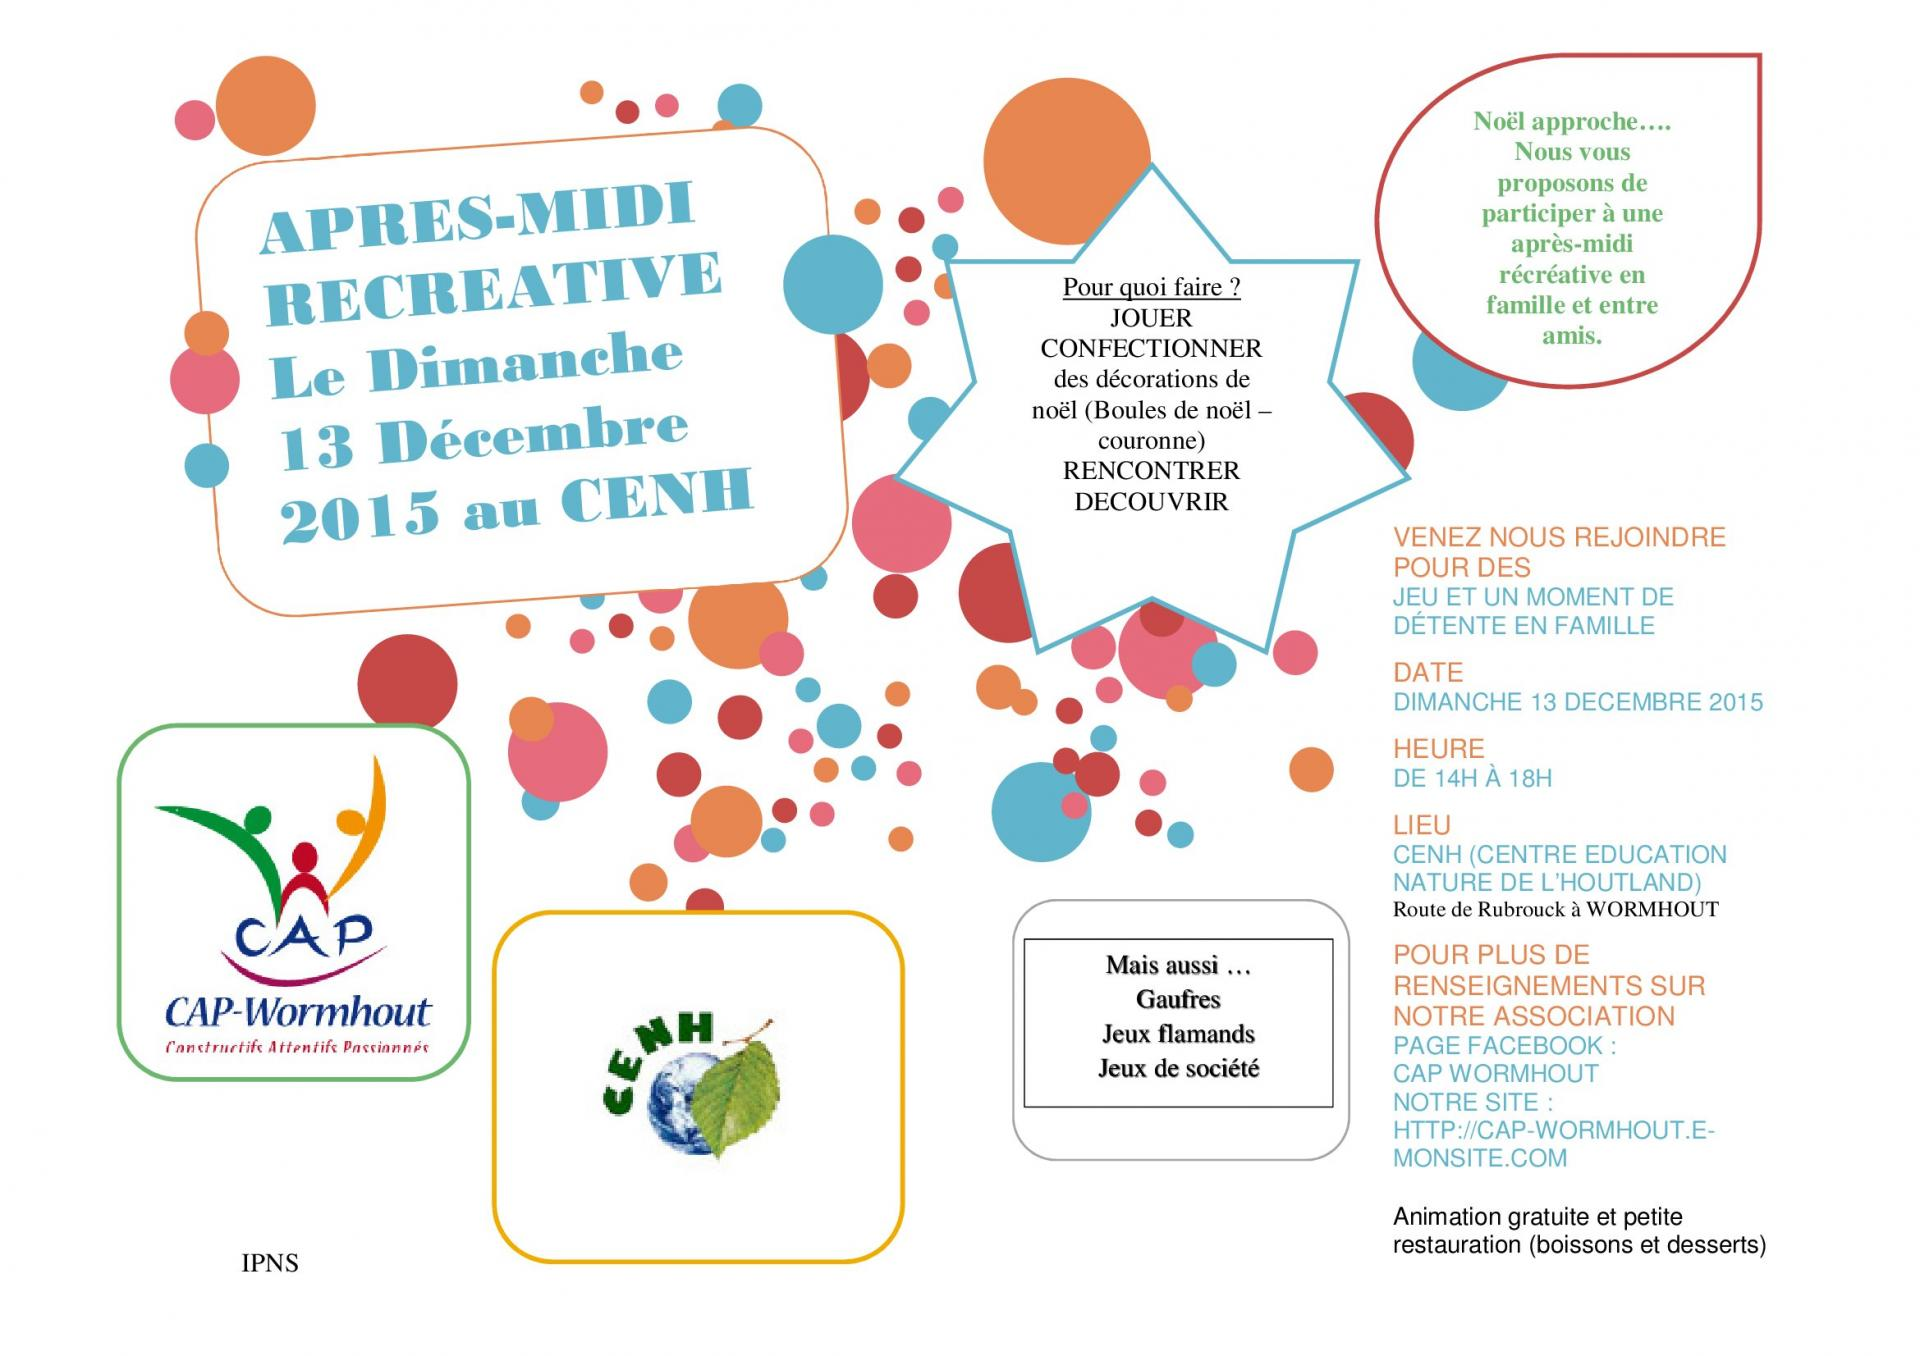 Apres midi recreative decembre 2015